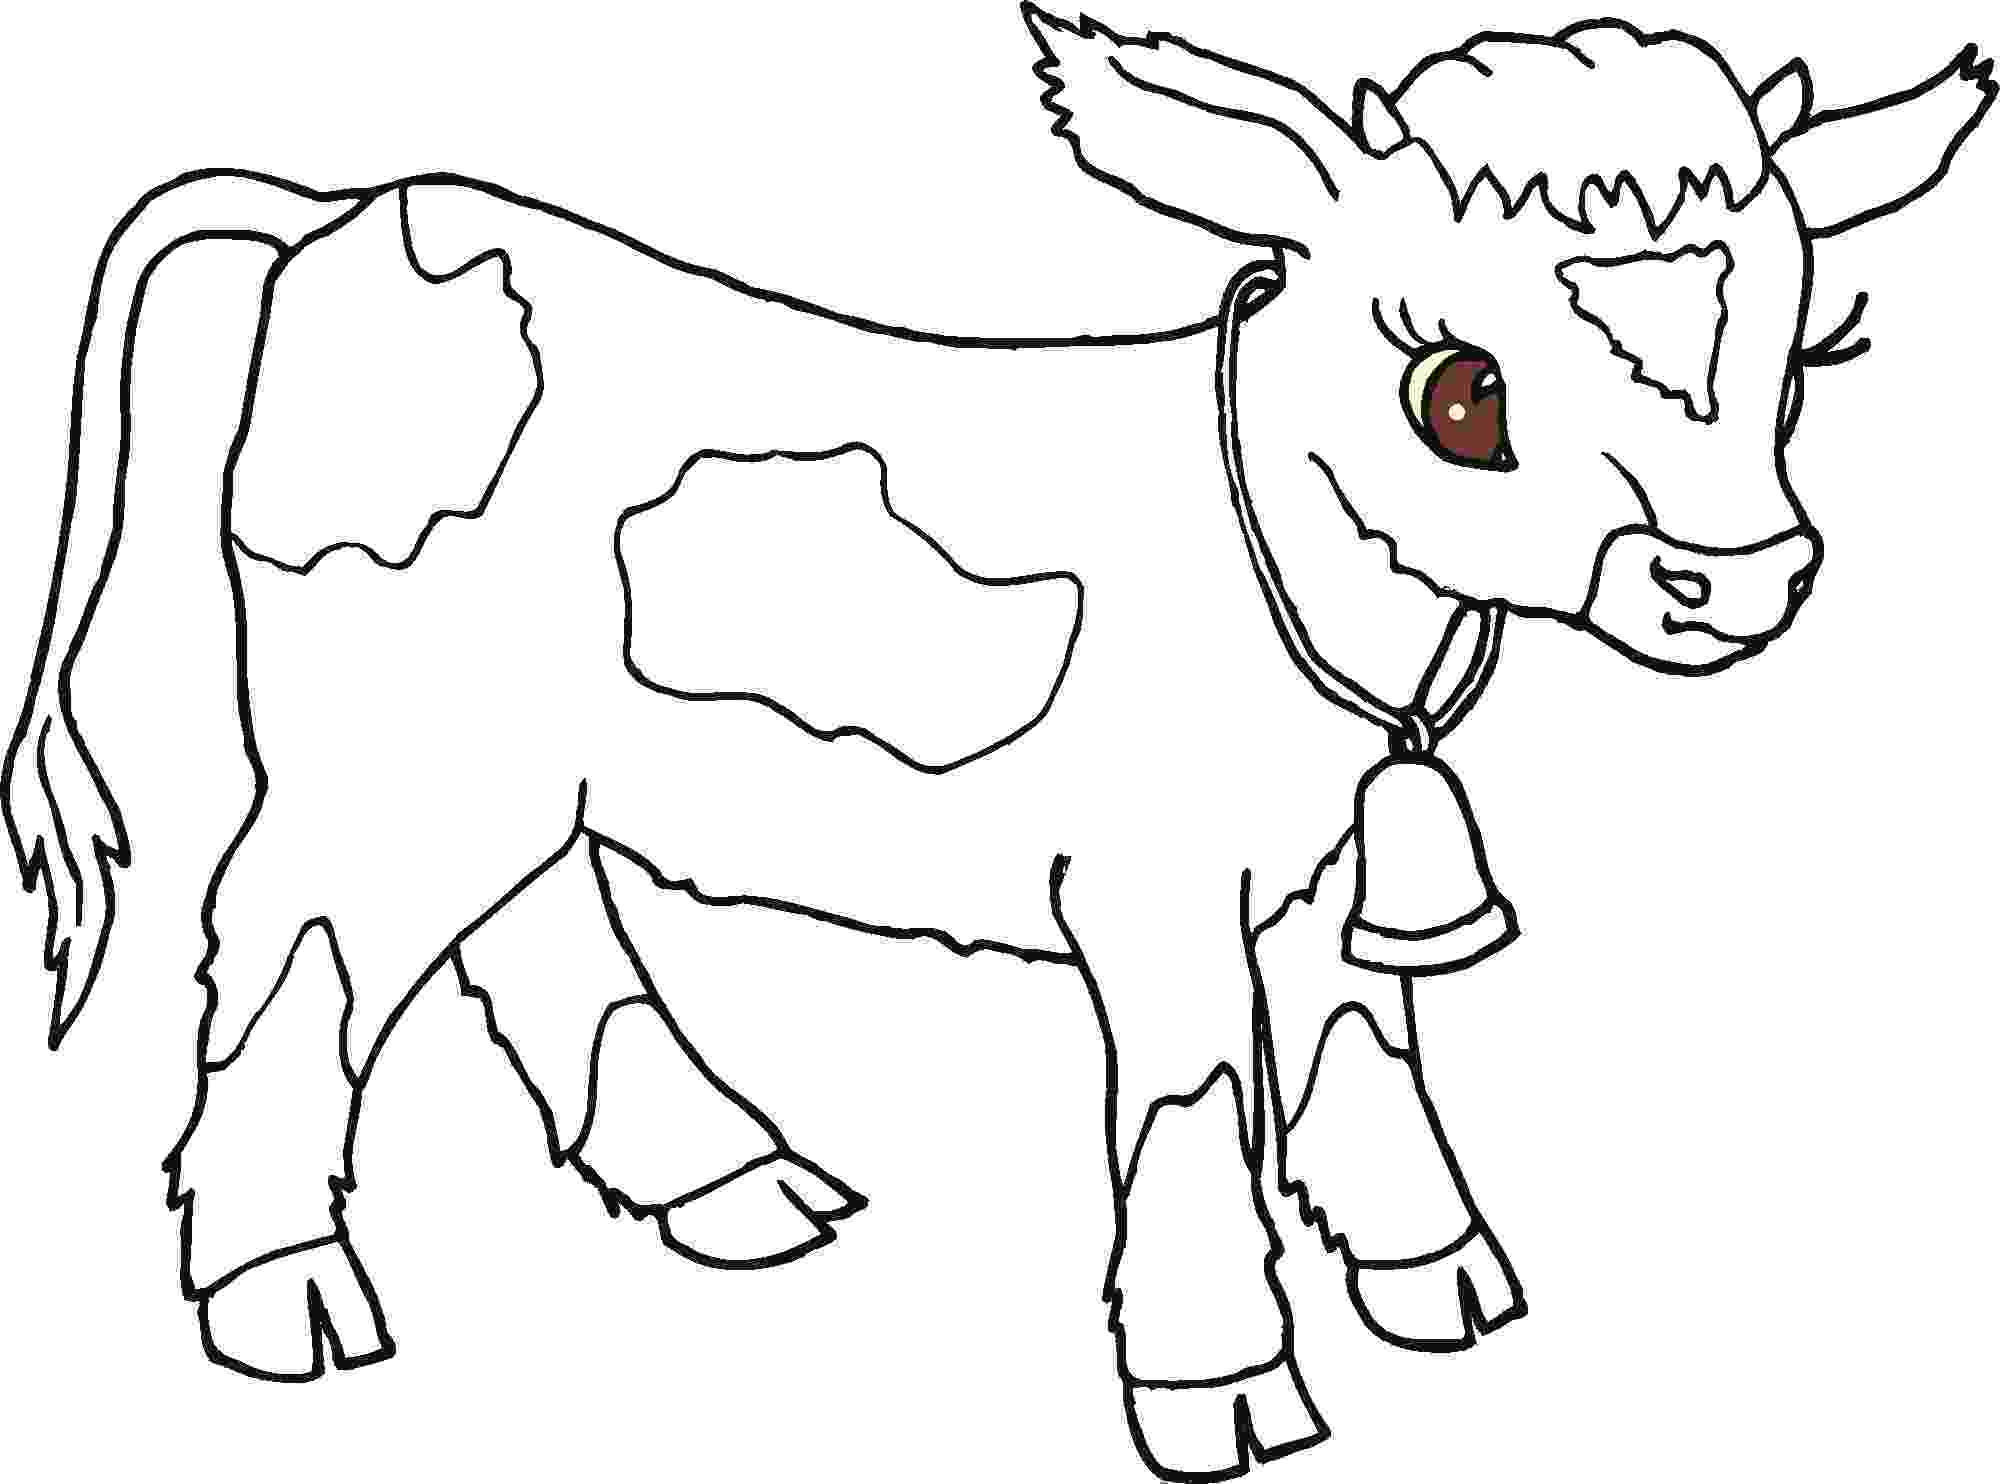 coloring book pages cow free printable cow coloring pages for kids cool2bkids book coloring pages cow